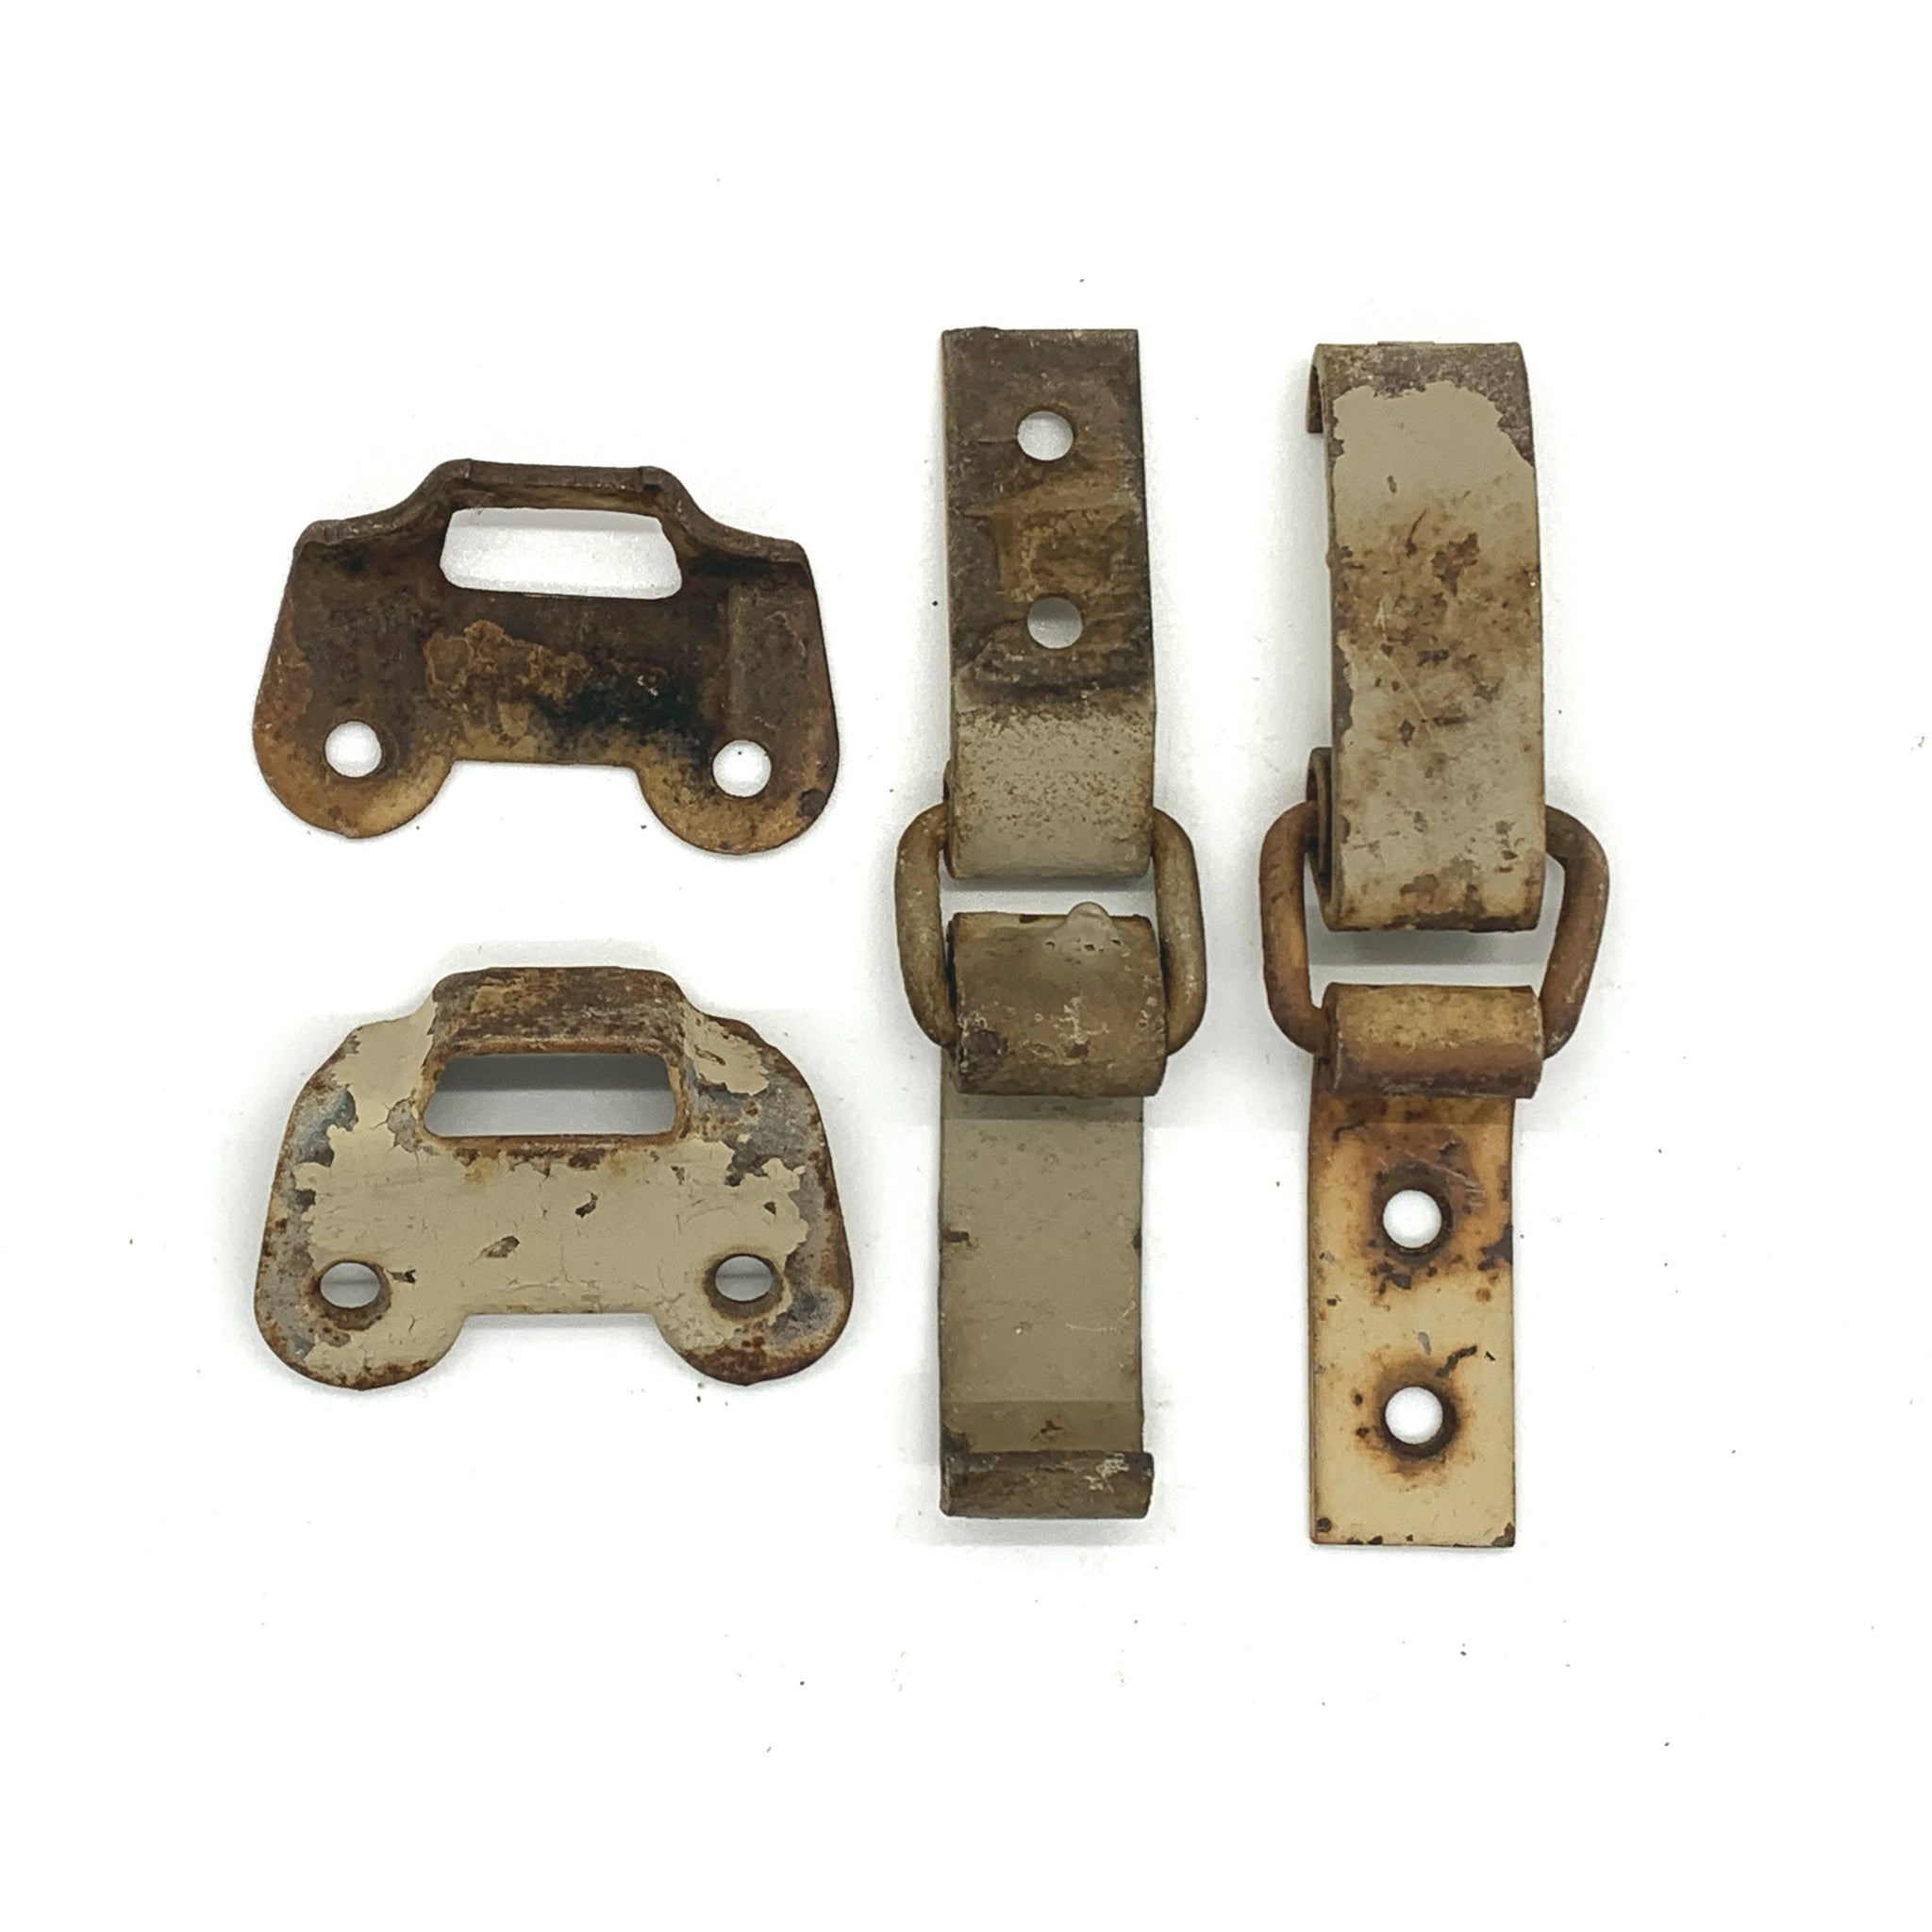 Toggle Latch & Hasp Clamp Set (4 Pieces) - Original Military Box & Crate Hardware - Marshall's Arsenal